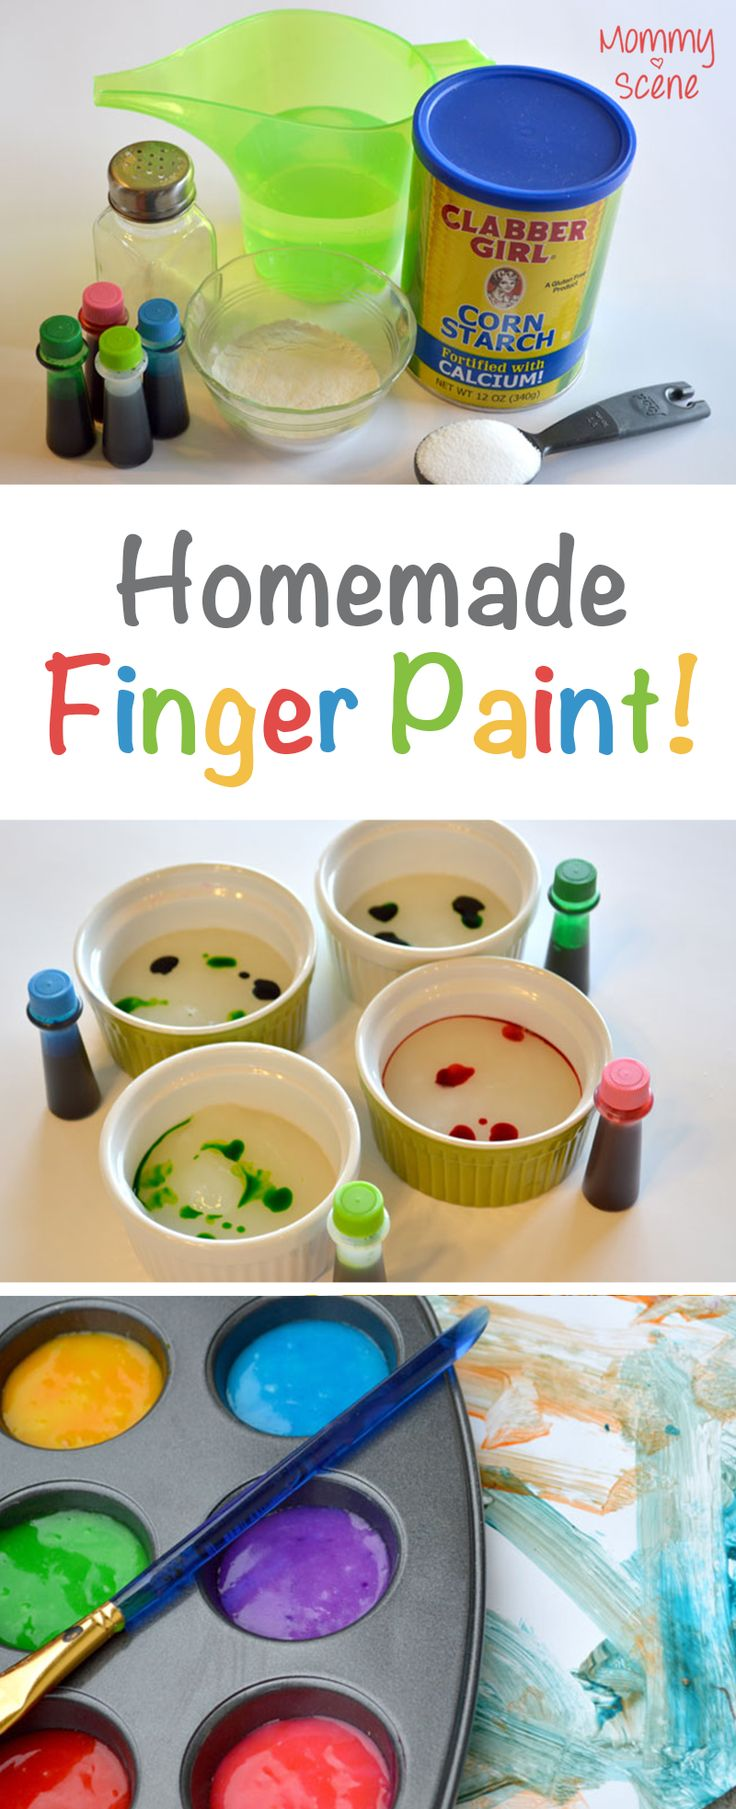 Baby safe paint for crafts - Best 25 Homemade Finger Paints Ideas Only On Pinterest Edible Paint Family Activities With Toddlers And Baby Painting